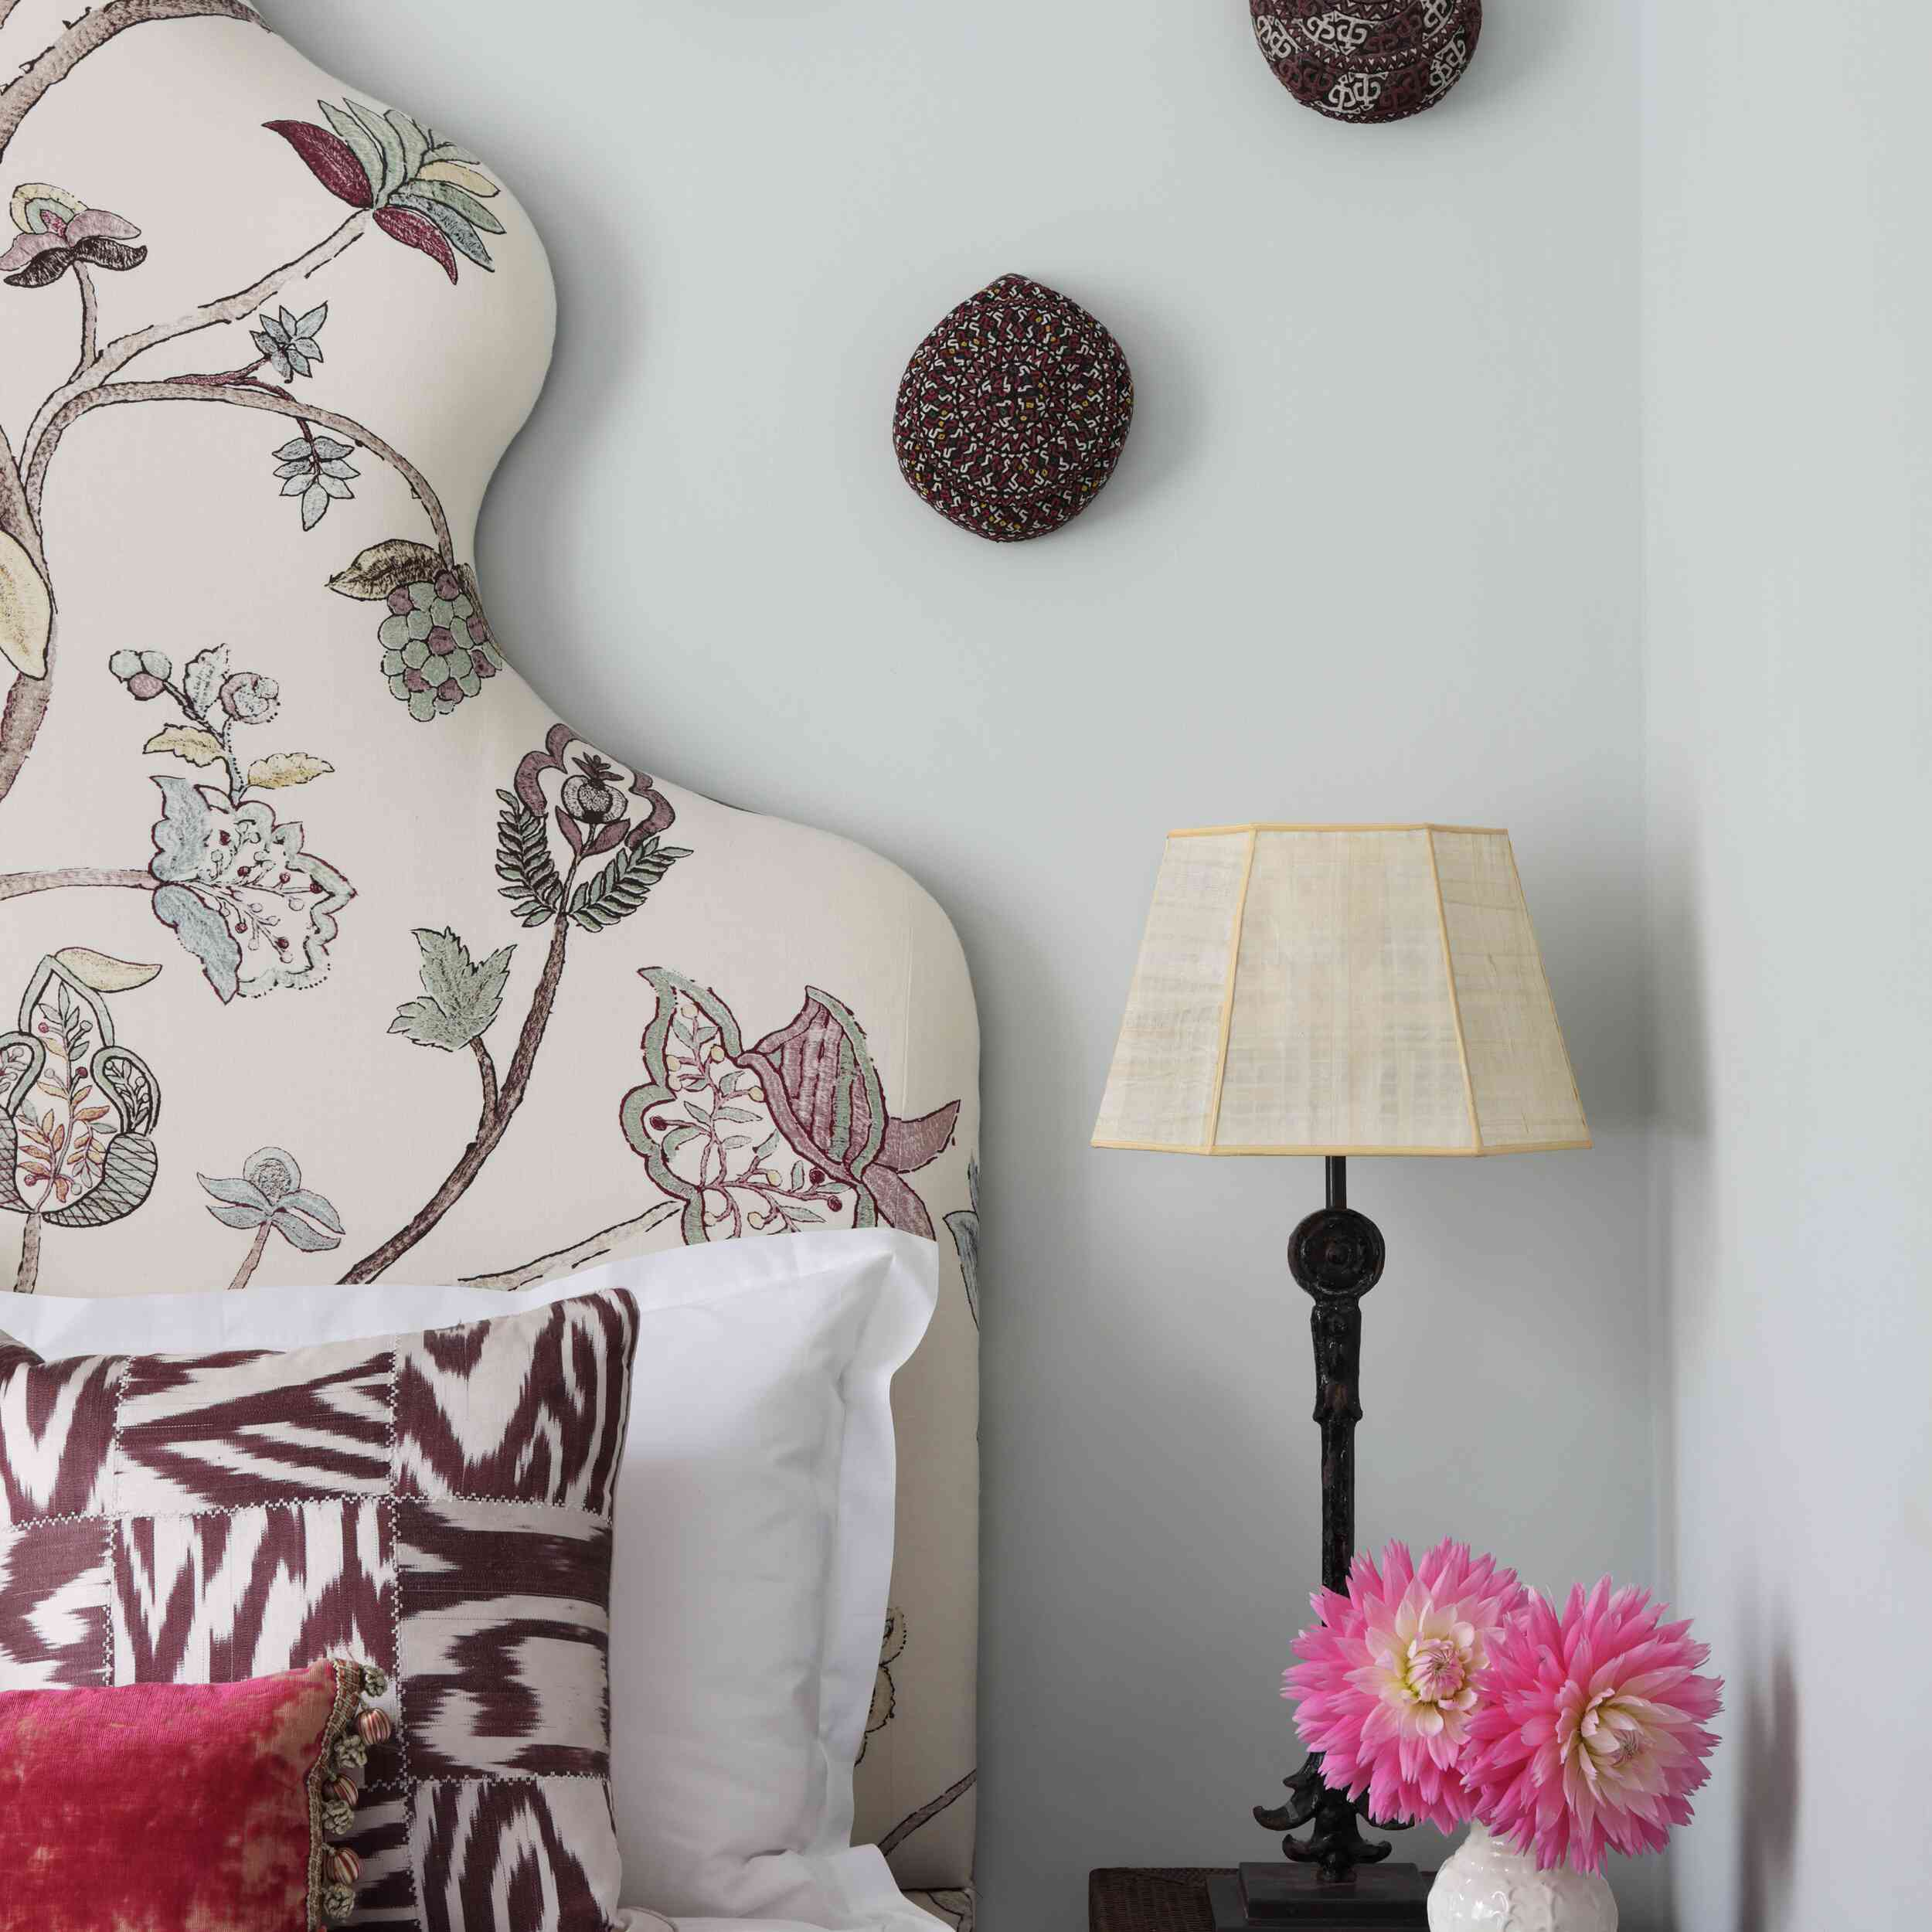 A maximalist bedroom with light blue walls